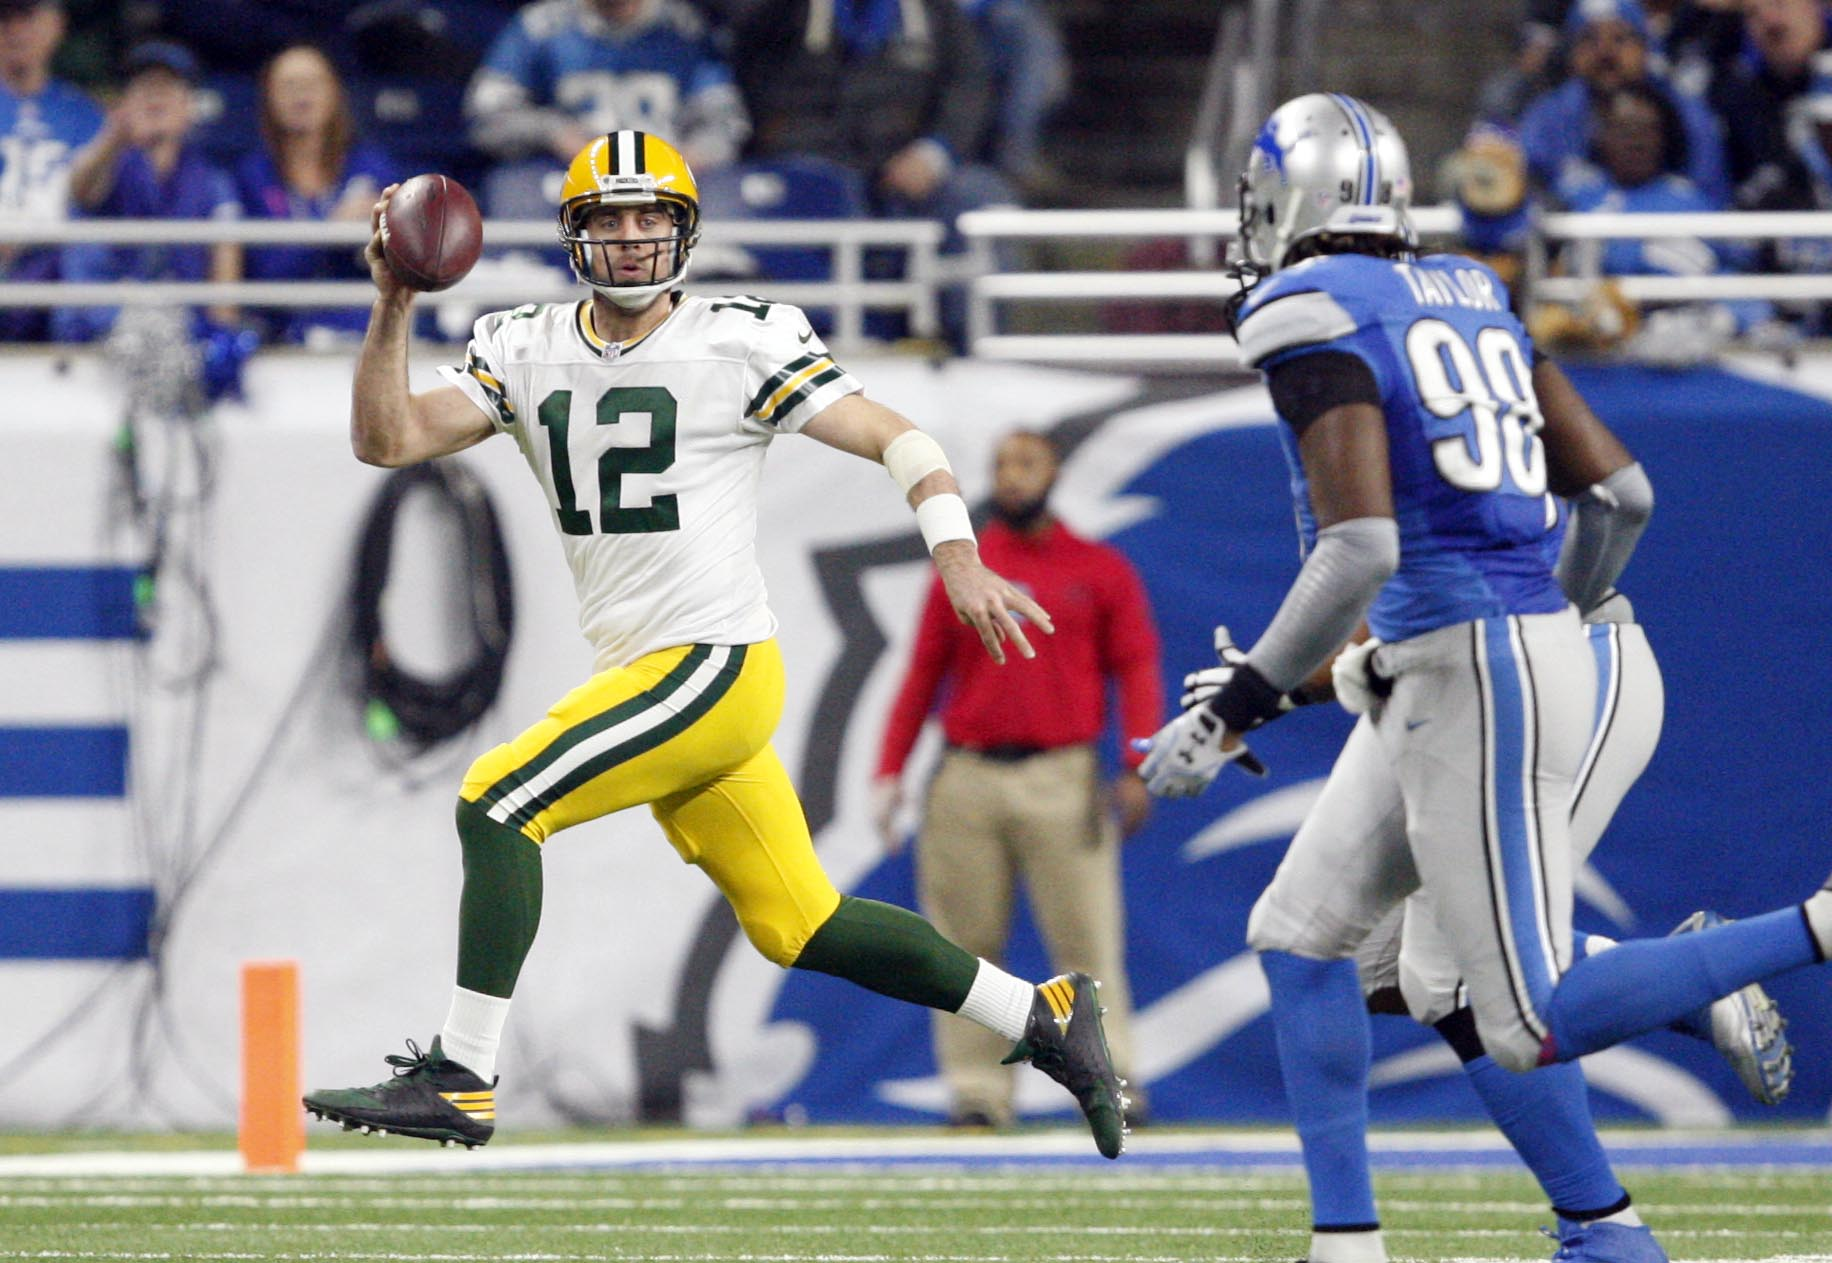 Jan 1, 2017; Detroit, MI, USA; Green Bay Packers quarterback Aaron Rodgers (12) gets chased by Detroit Lions defensive end Devin Taylor (98) during the second quarter at Ford Field. Packers won 31-24. Mandatory Credit: Raj Mehta-USA TODAY Sports